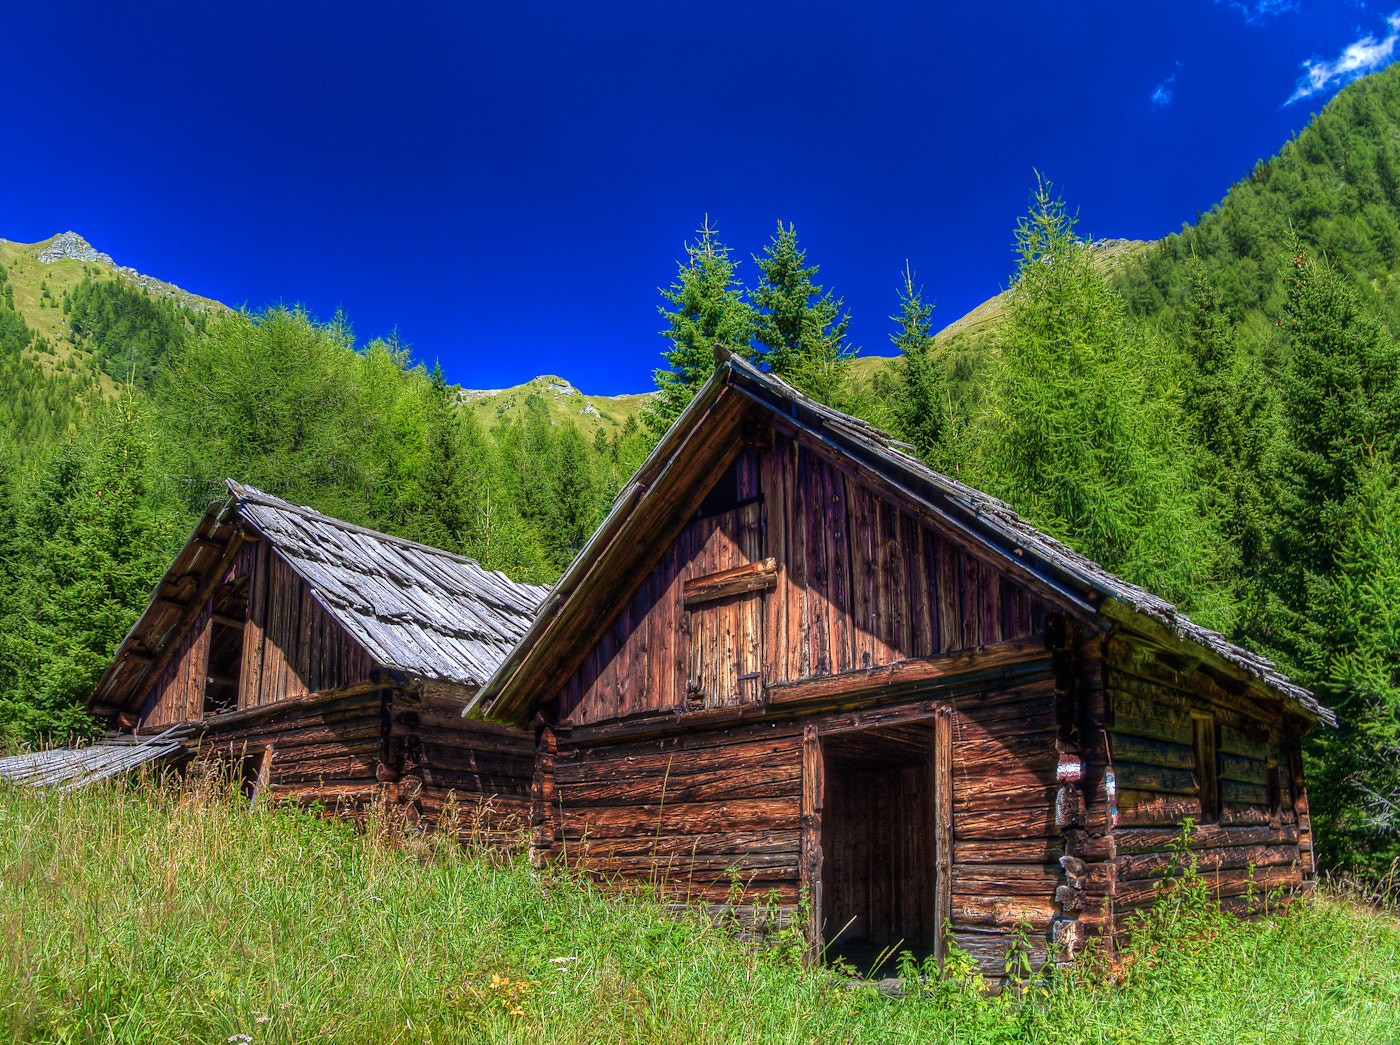 Photograph old houses by Paul Werner Suess on 500px